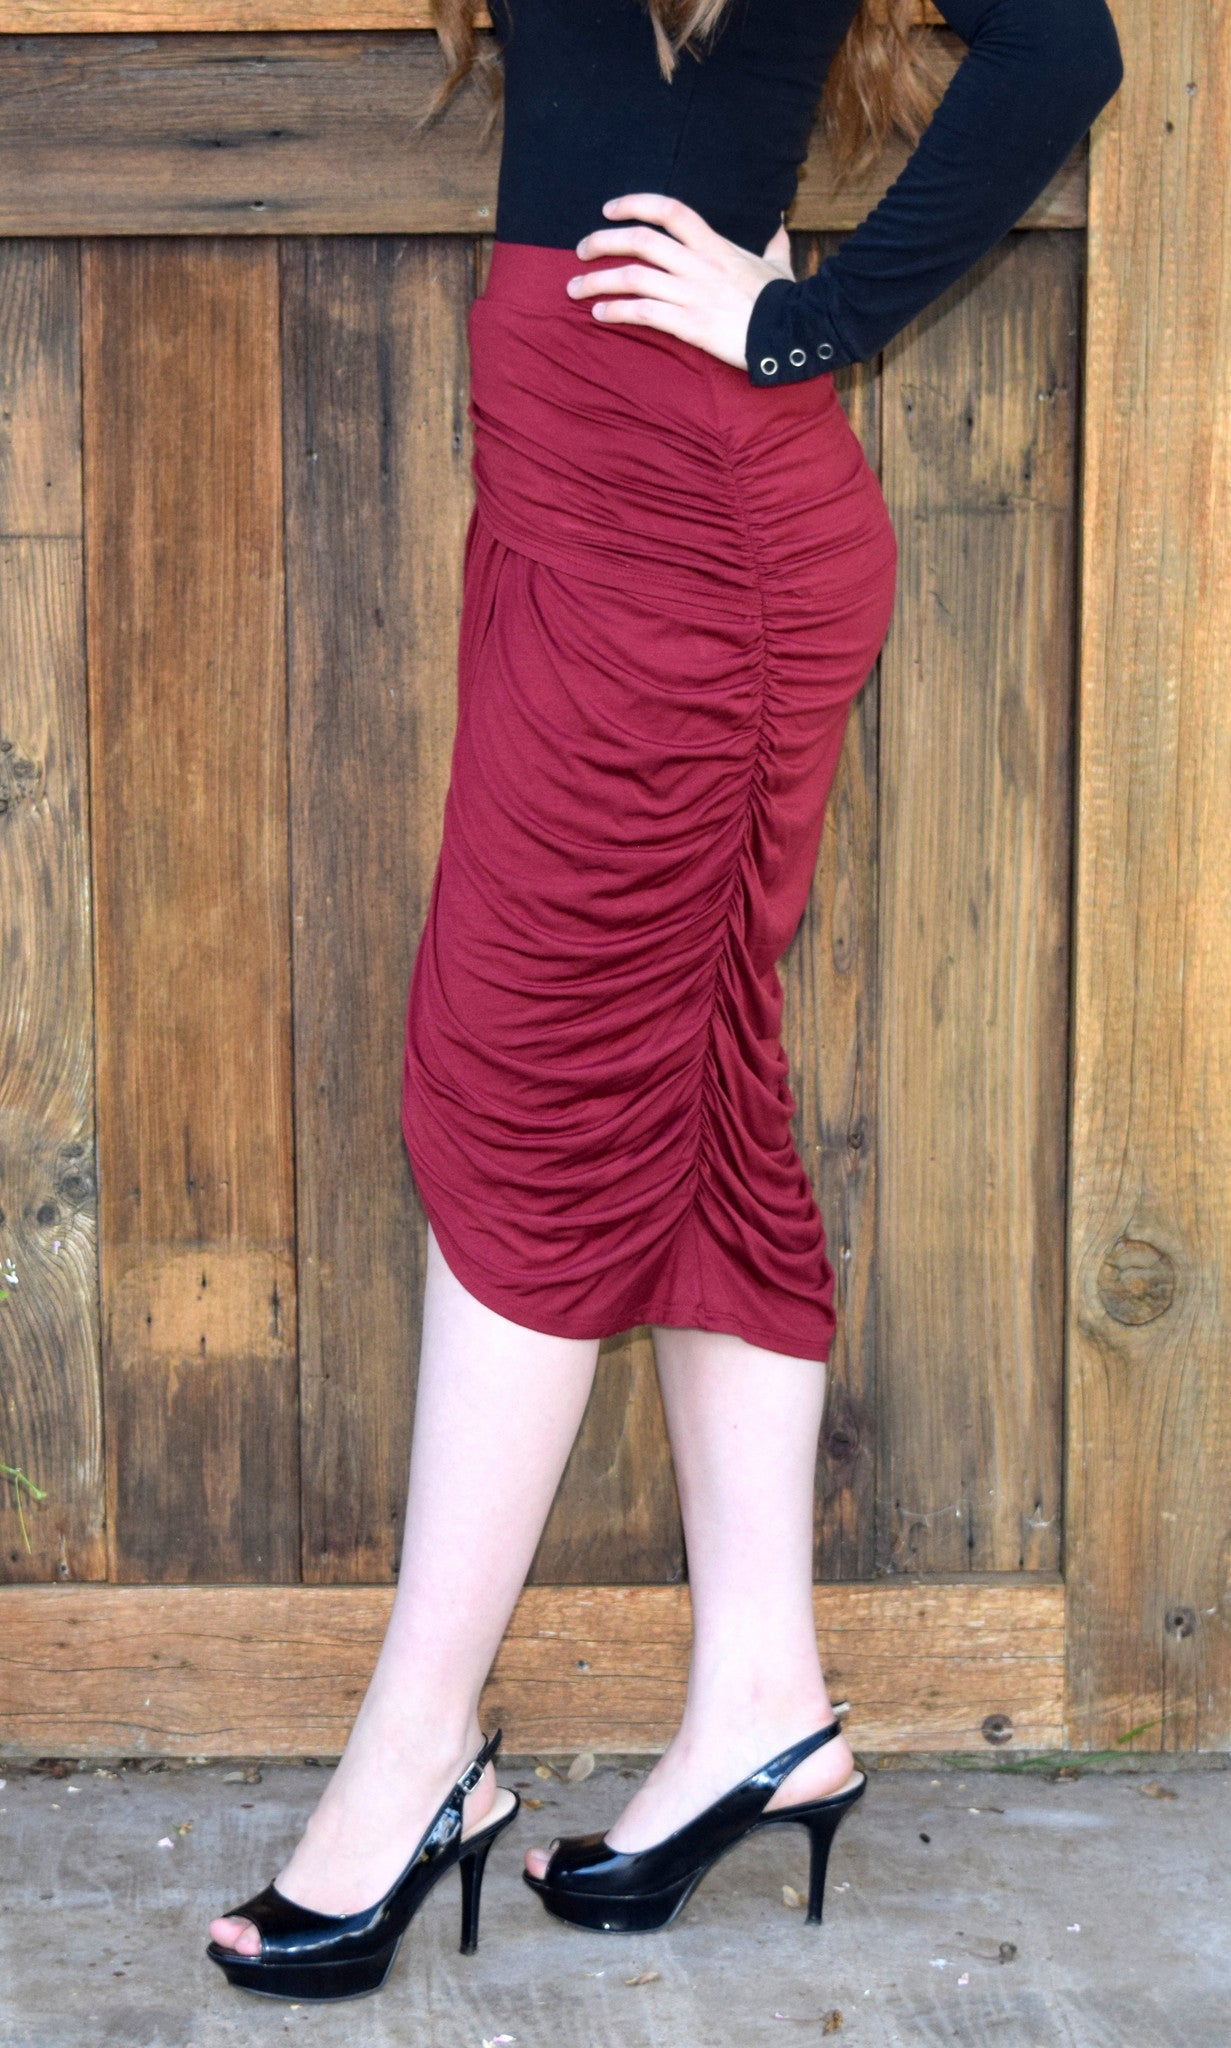 Ruched Midi Skirt - Burgundy FINAL SALE - Willow Blaire - 4